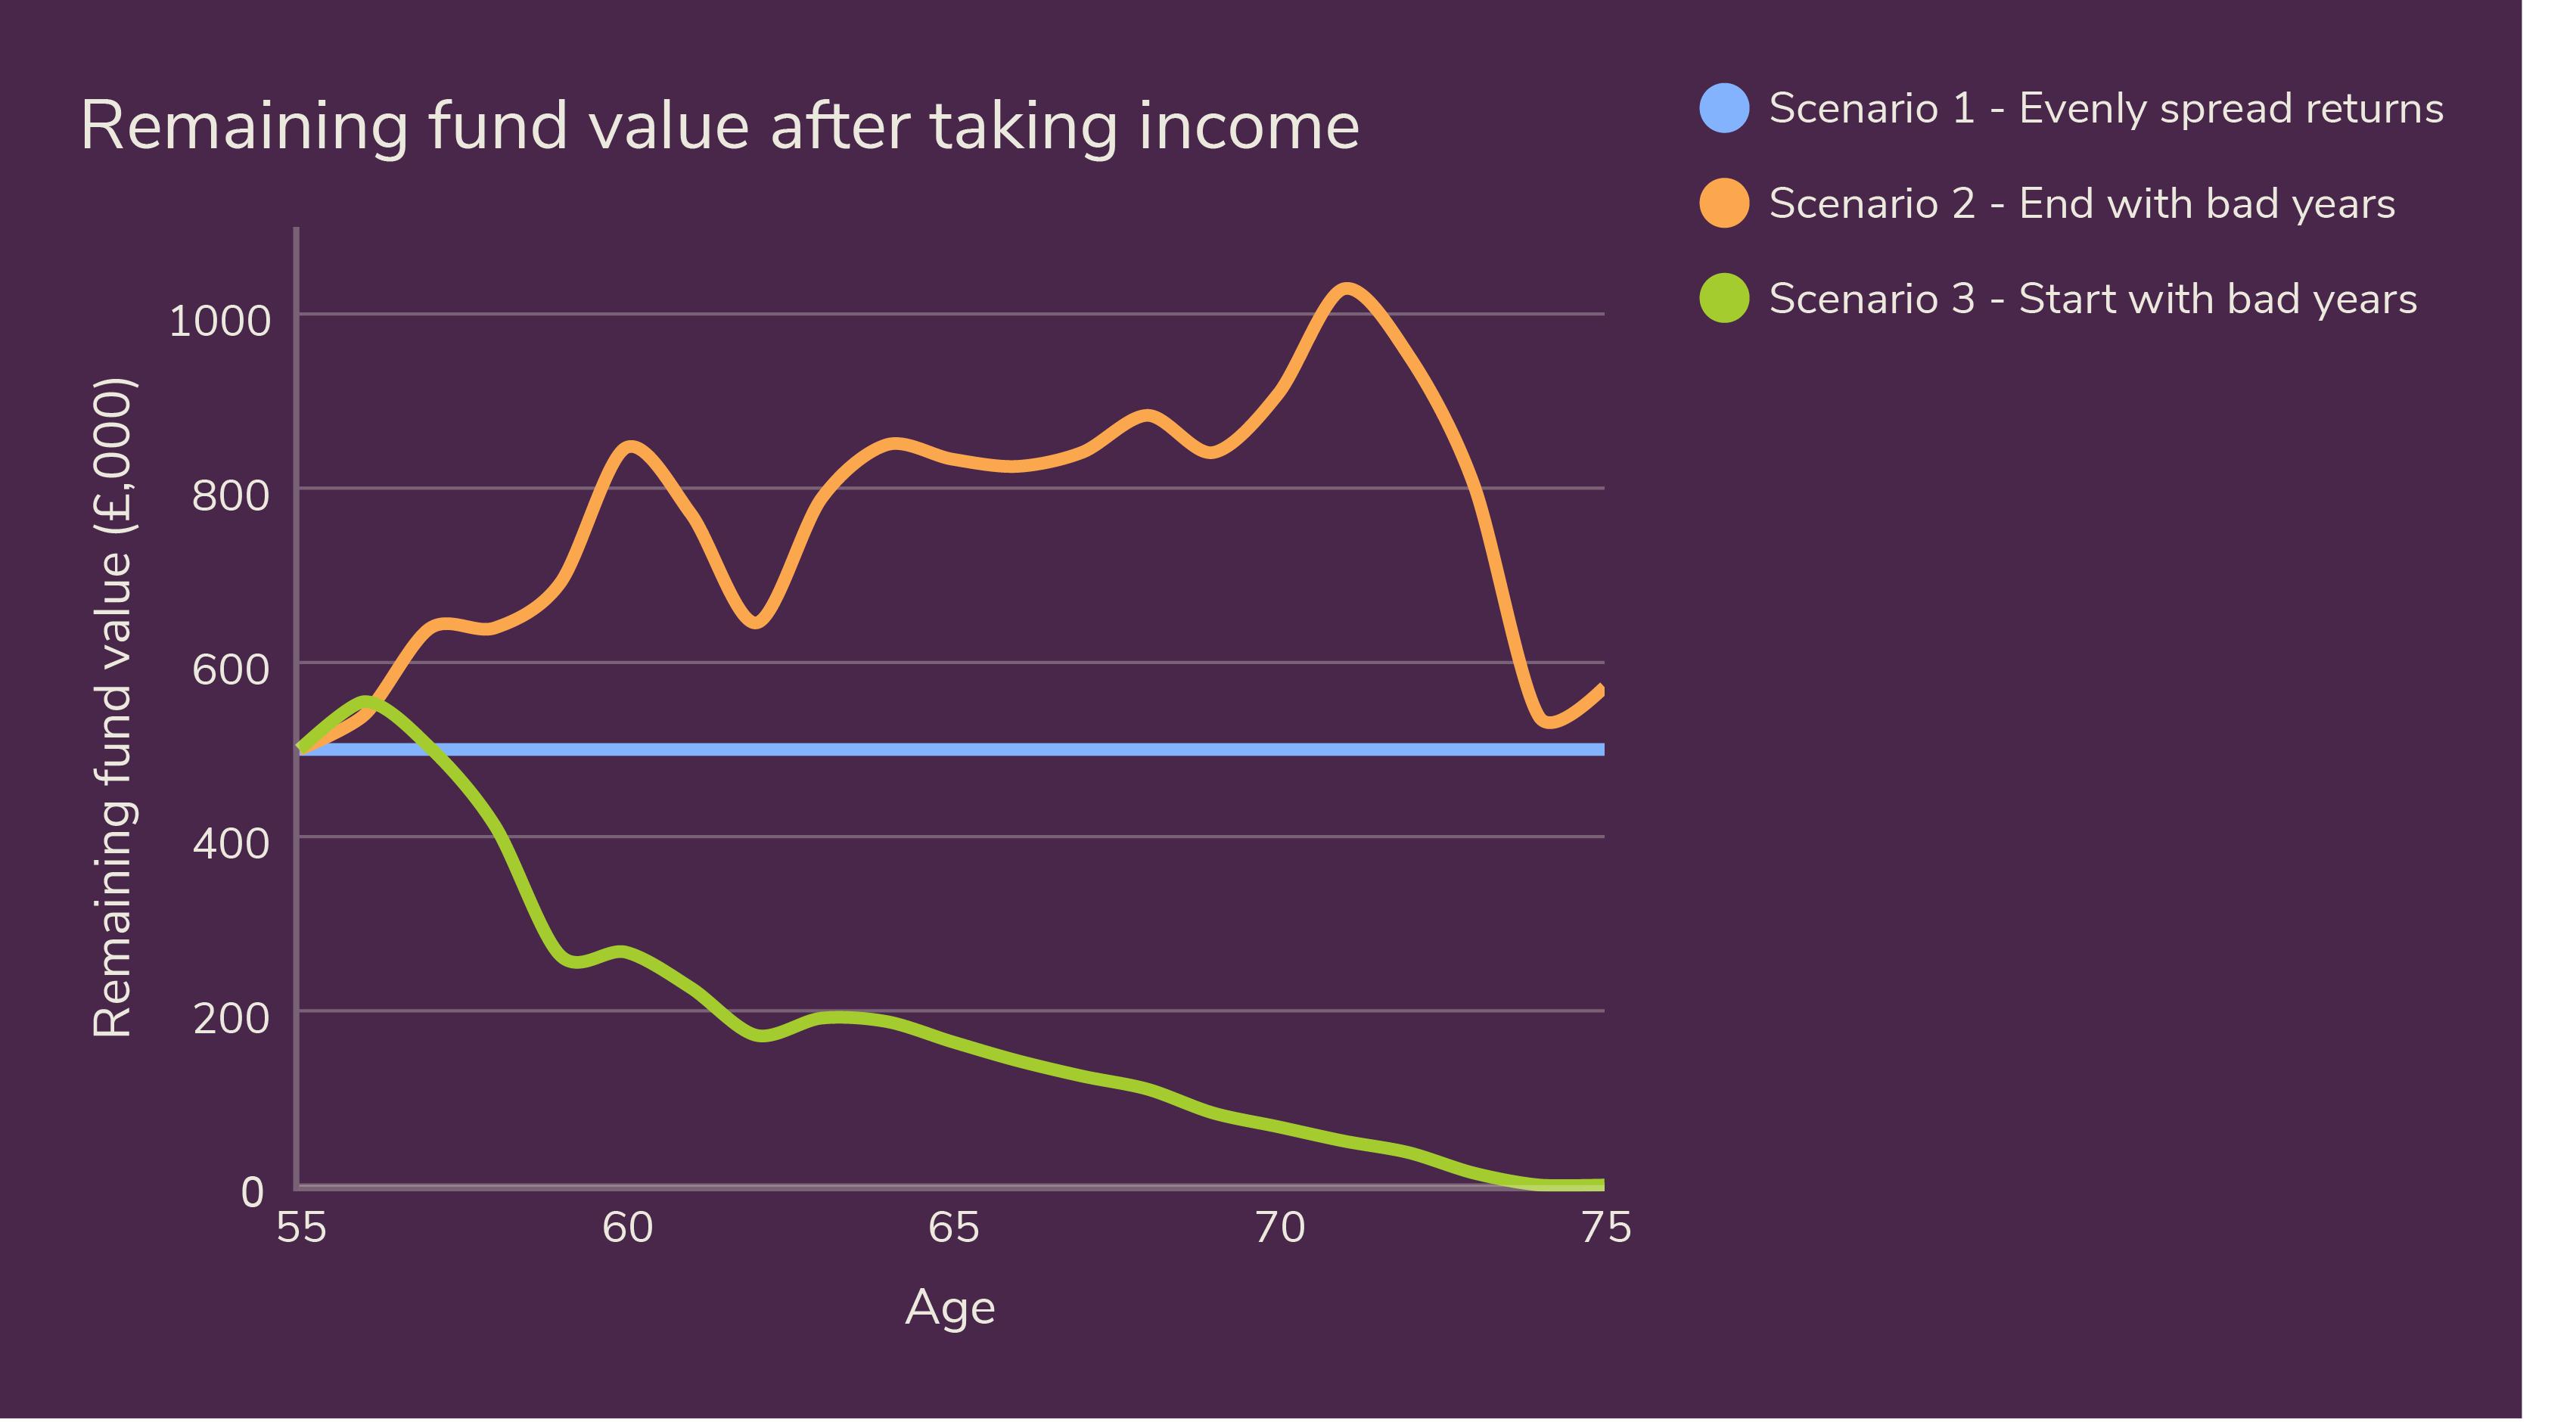 Remaining fund value after taking income (1)